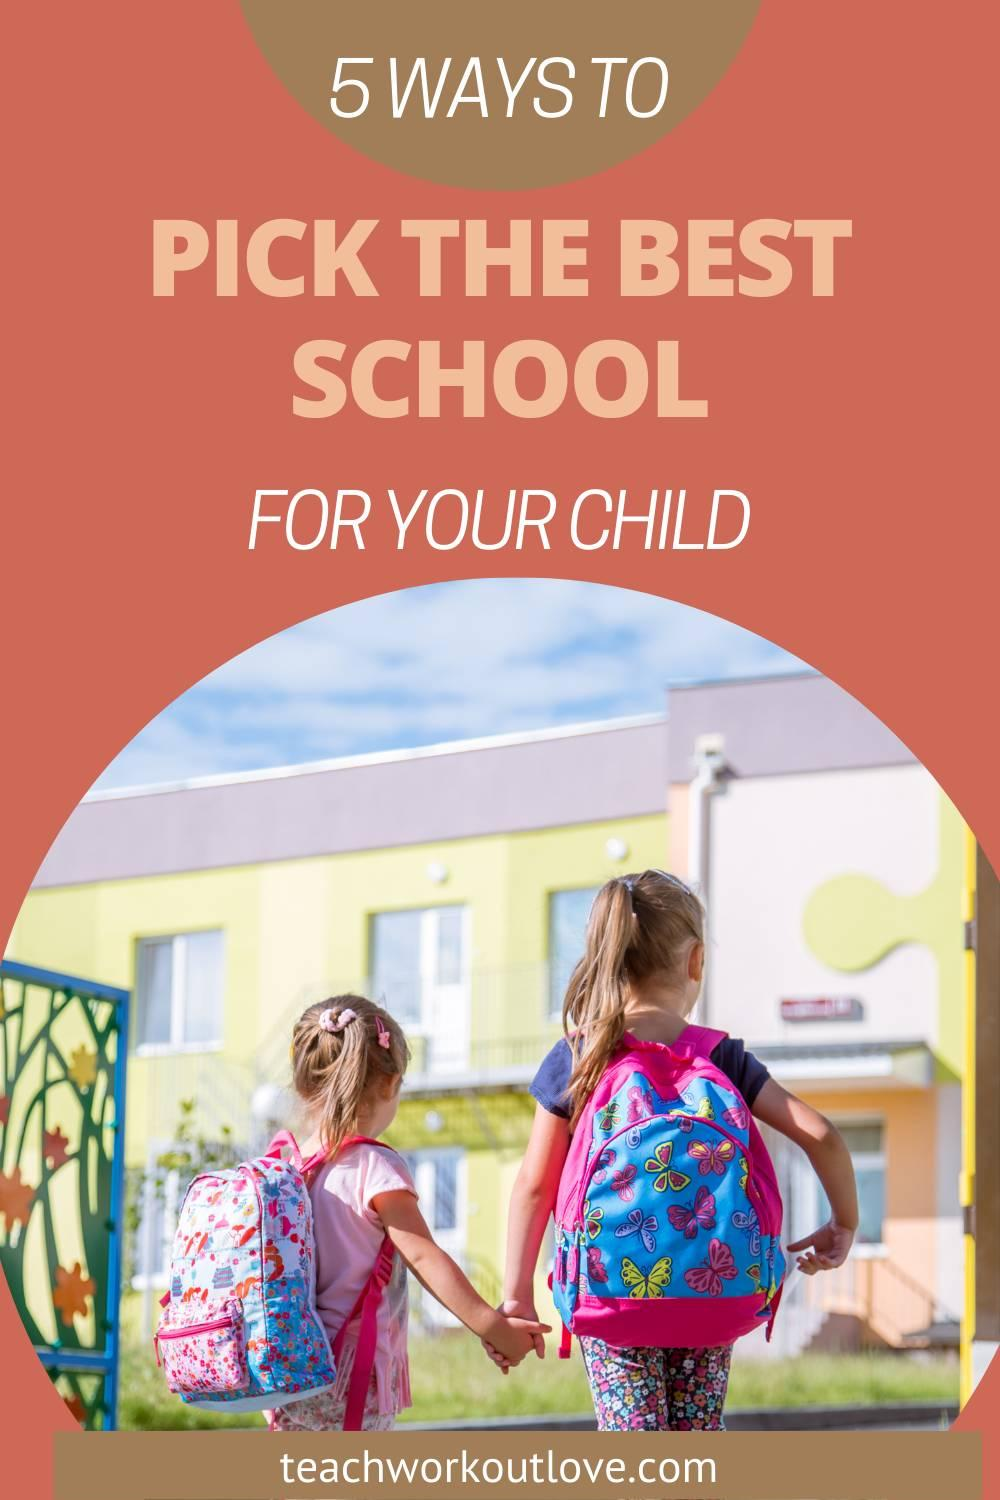 As a parent, you want to ensure that your offspring has the best possible education from local institutions. Here's how to pick.